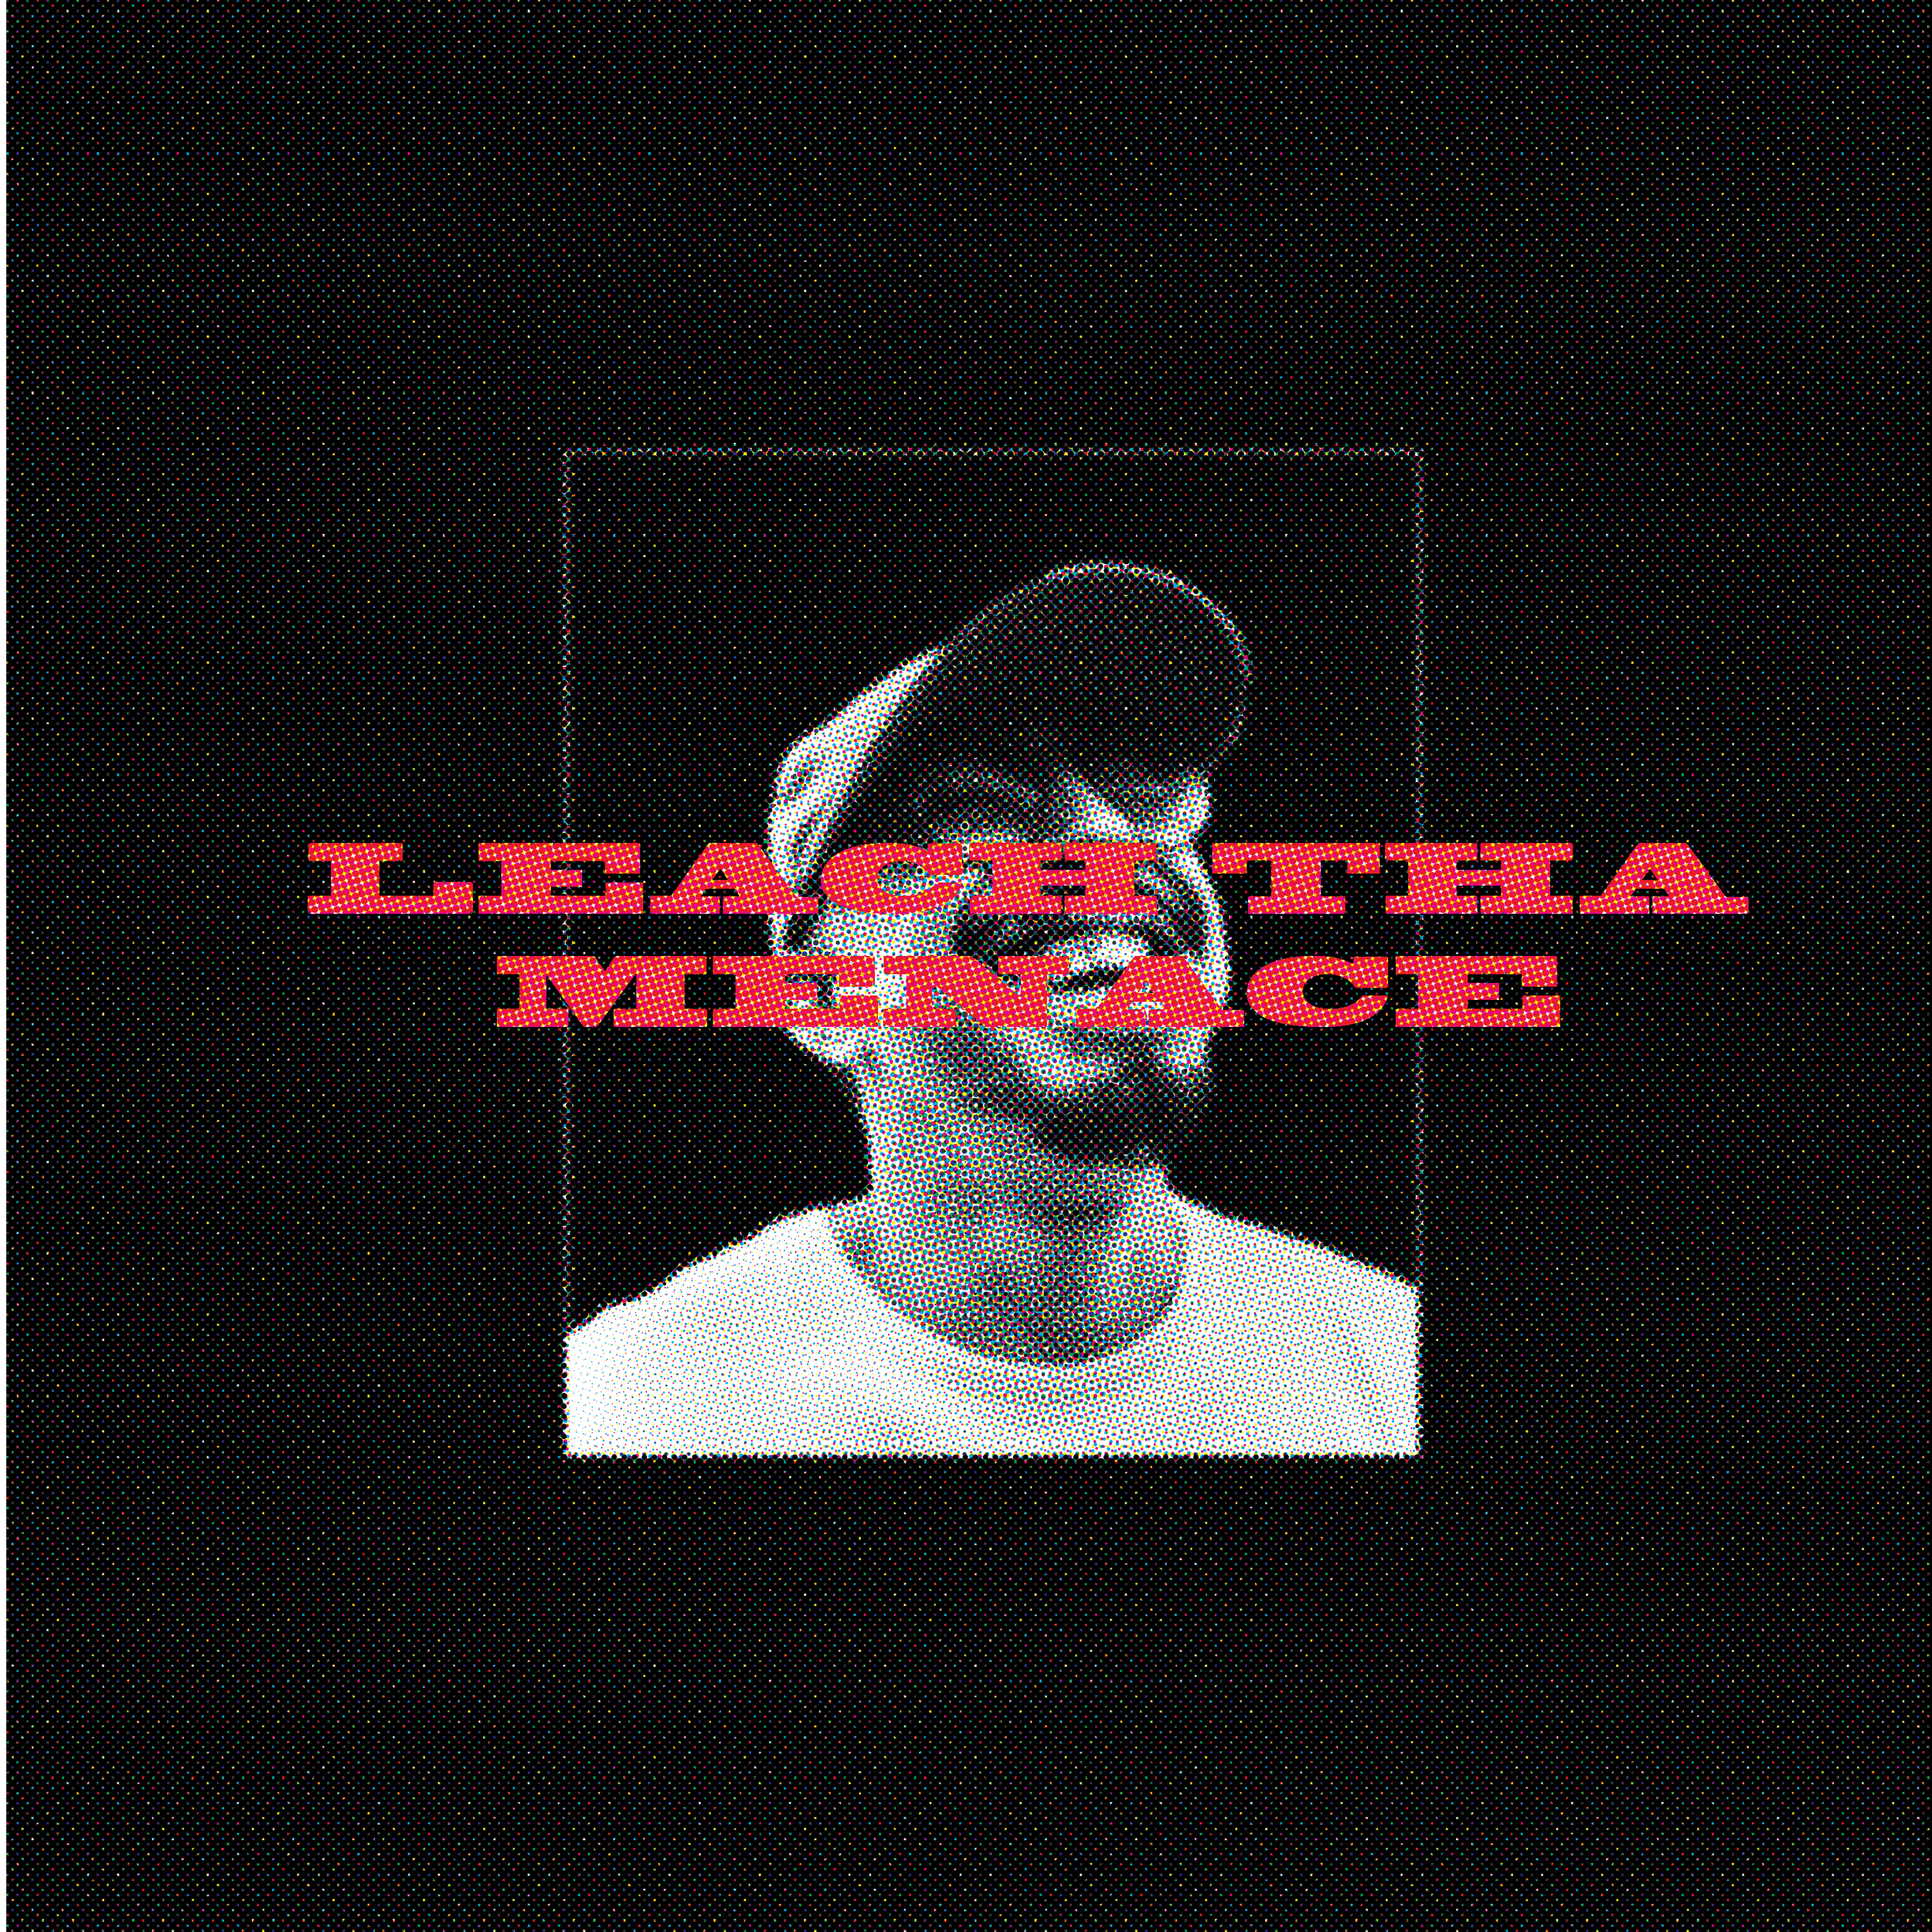 Leach tha menace_cover variations-08.png